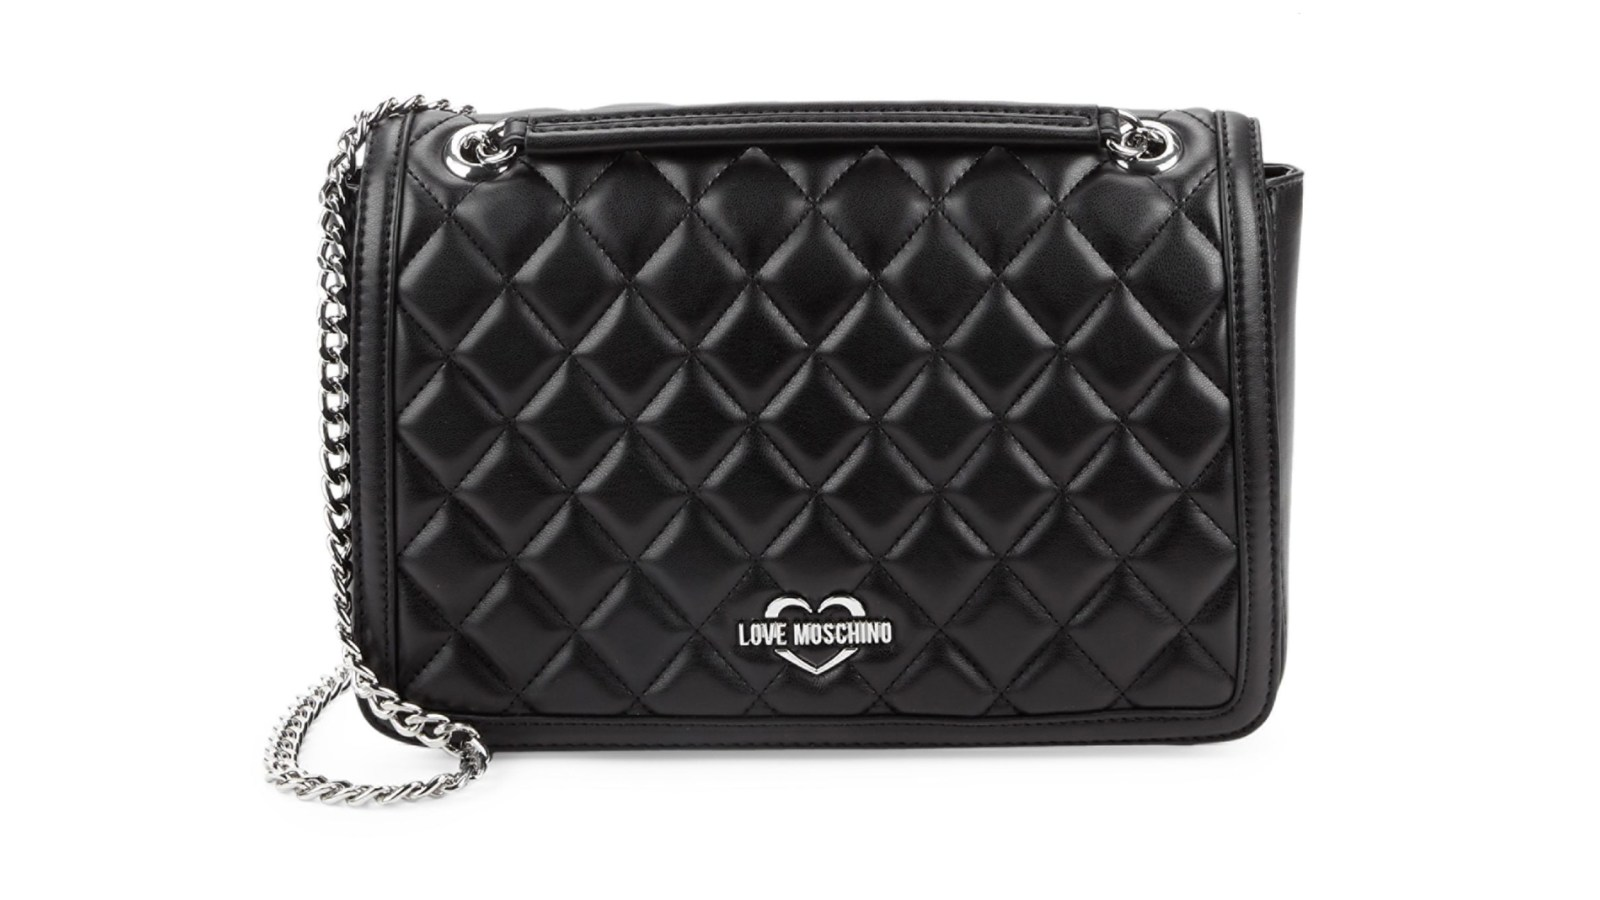 53bf57c71 Love Moschino? This Quilted Crossbody Is Over 50% Off Right Now!